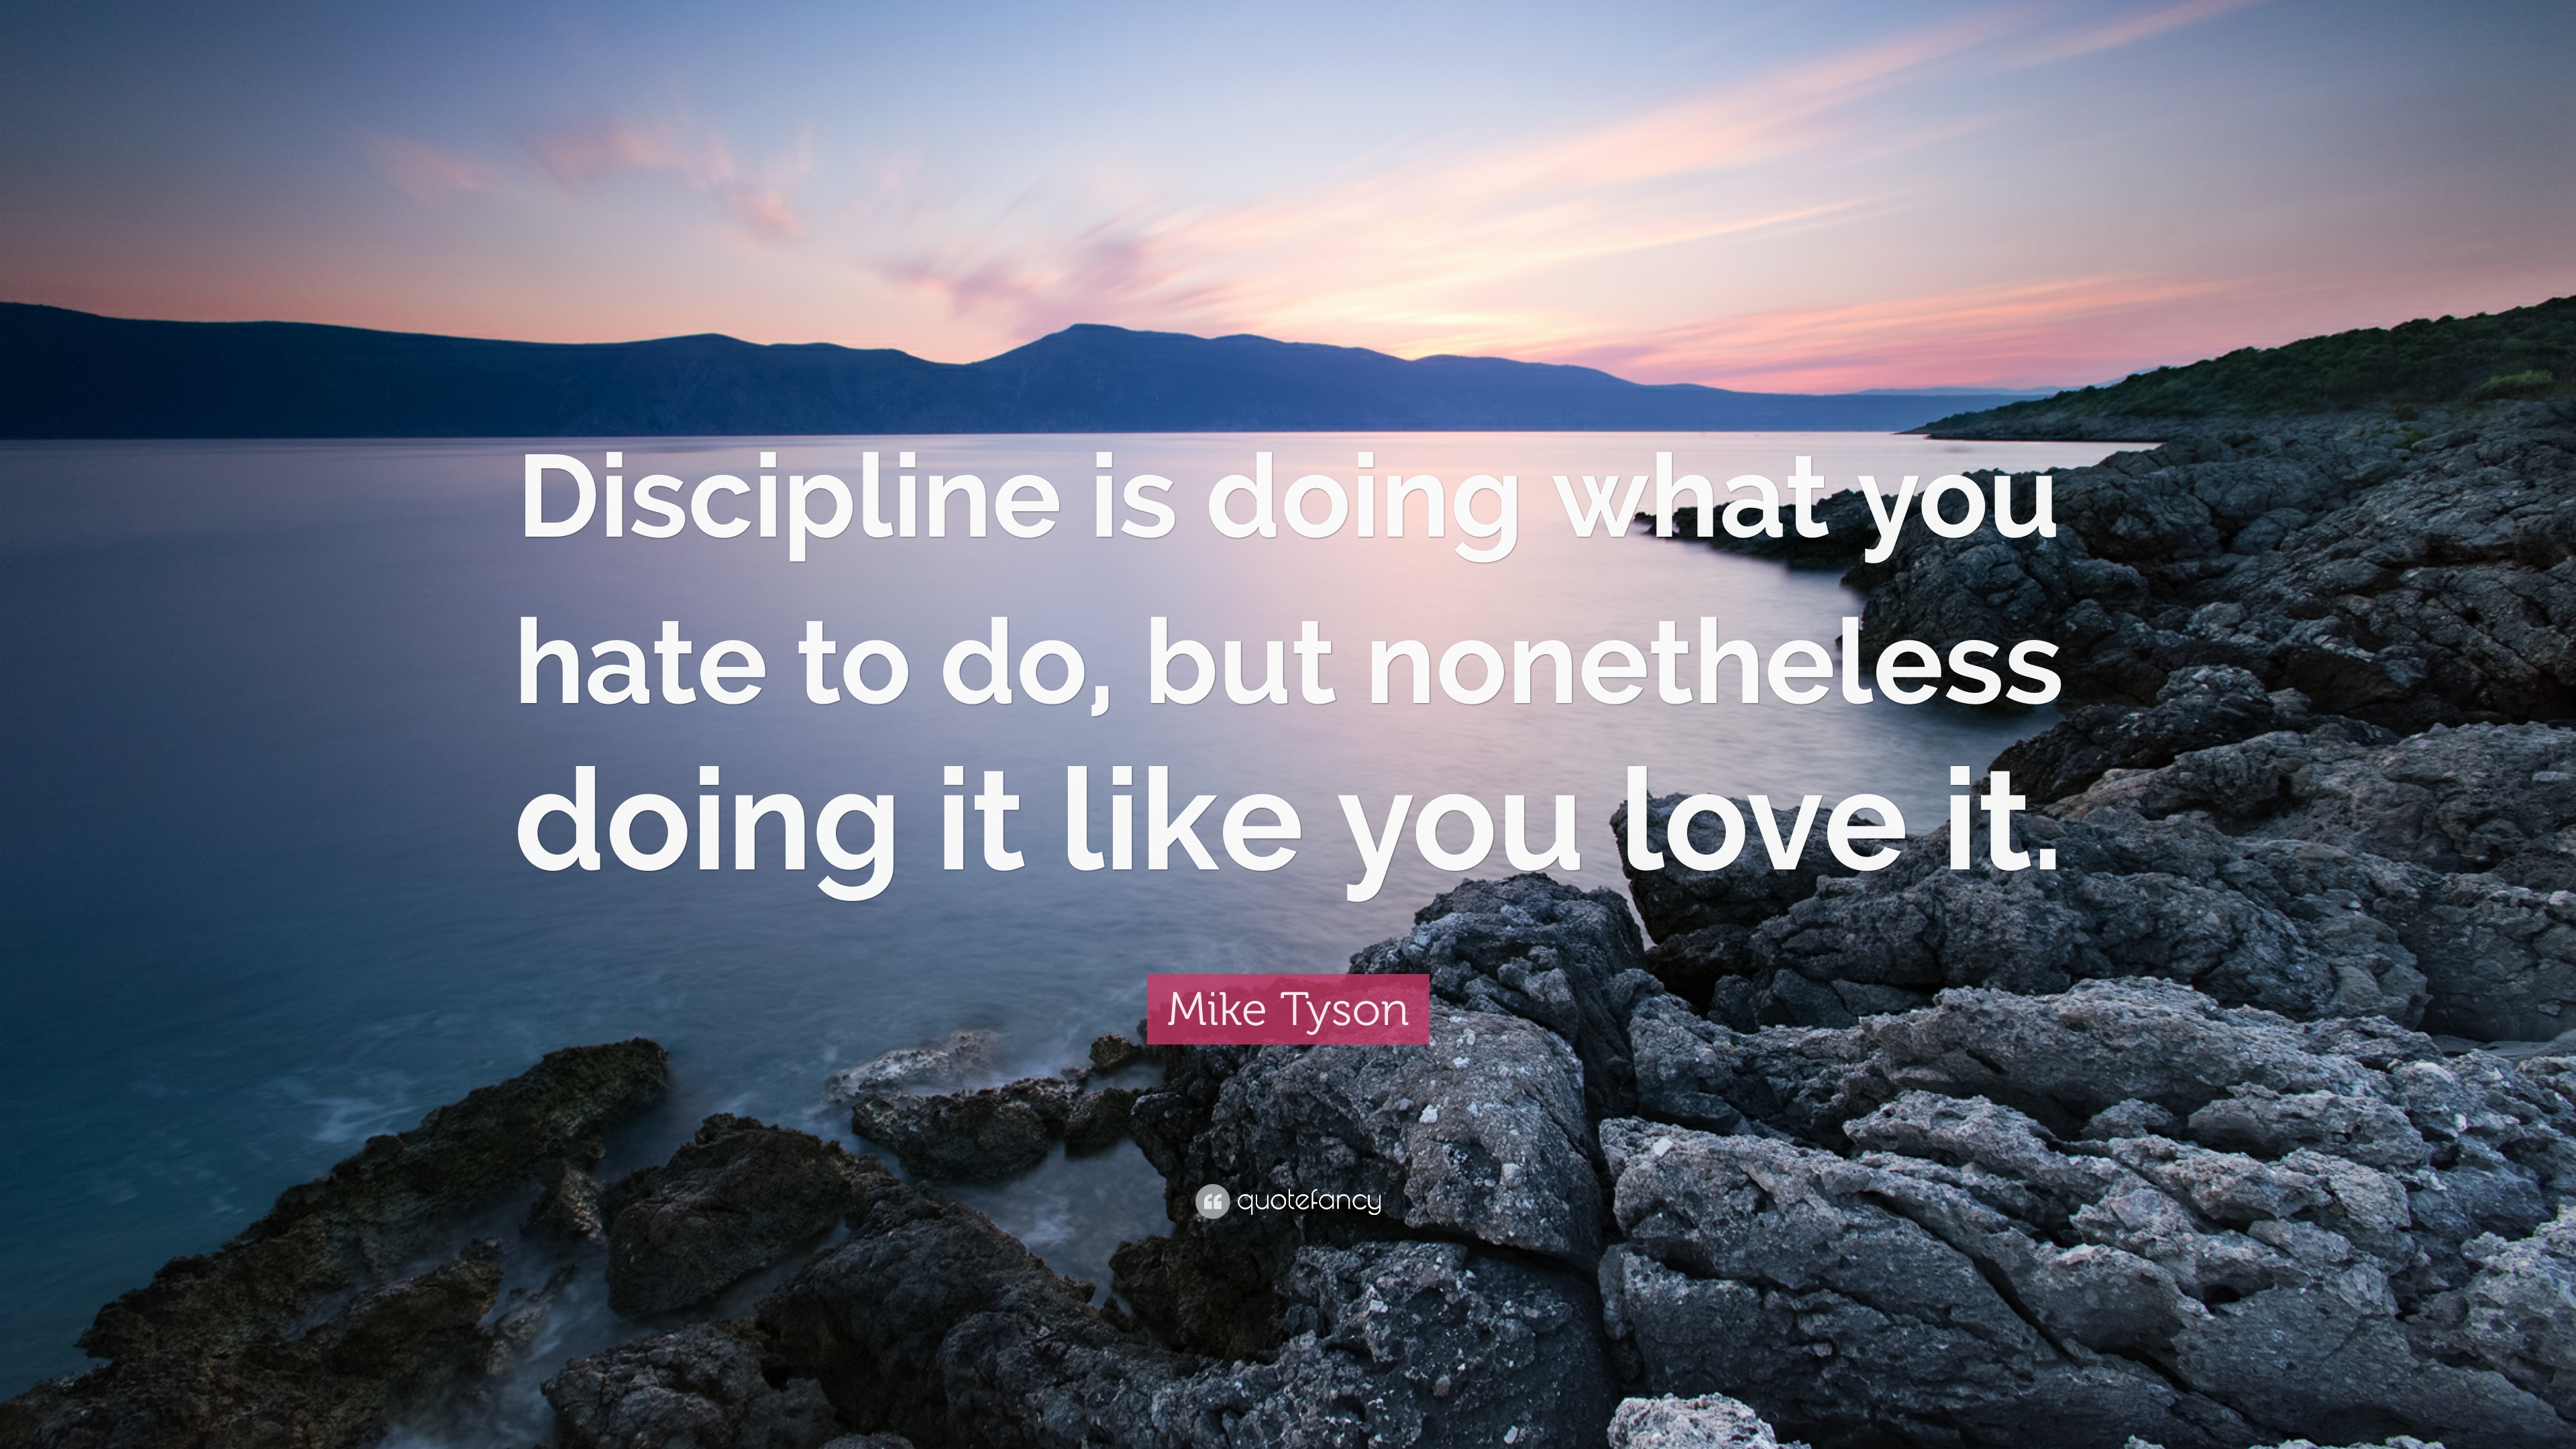 Mike Tyson Quote Discipline Is Doing What You Hate To Do But